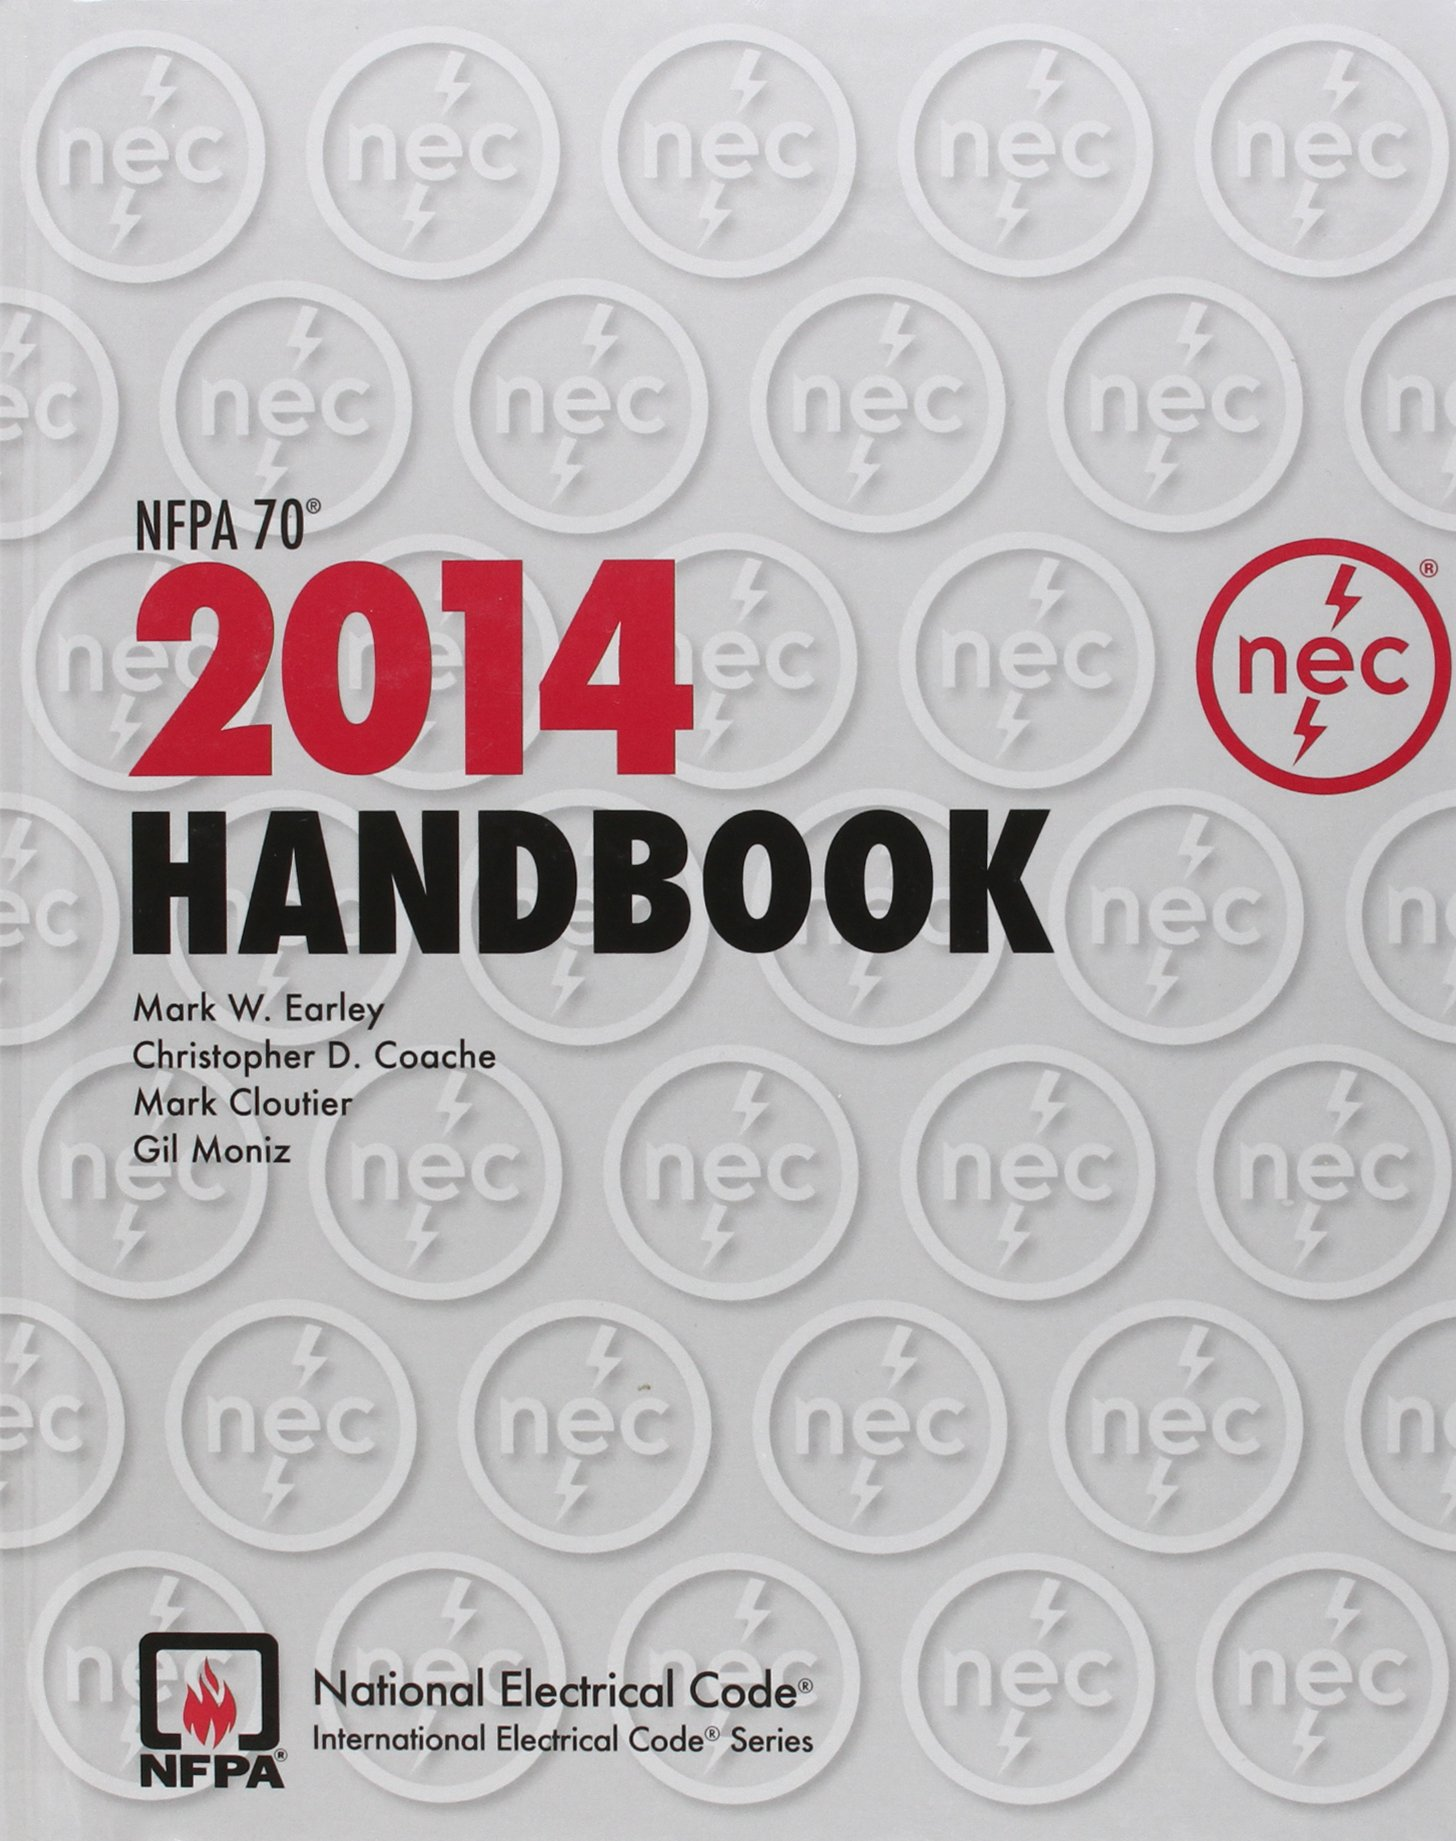 National Electrical Code 2014 Handbook (International Electrical Code) by Delmar Cengage Learning